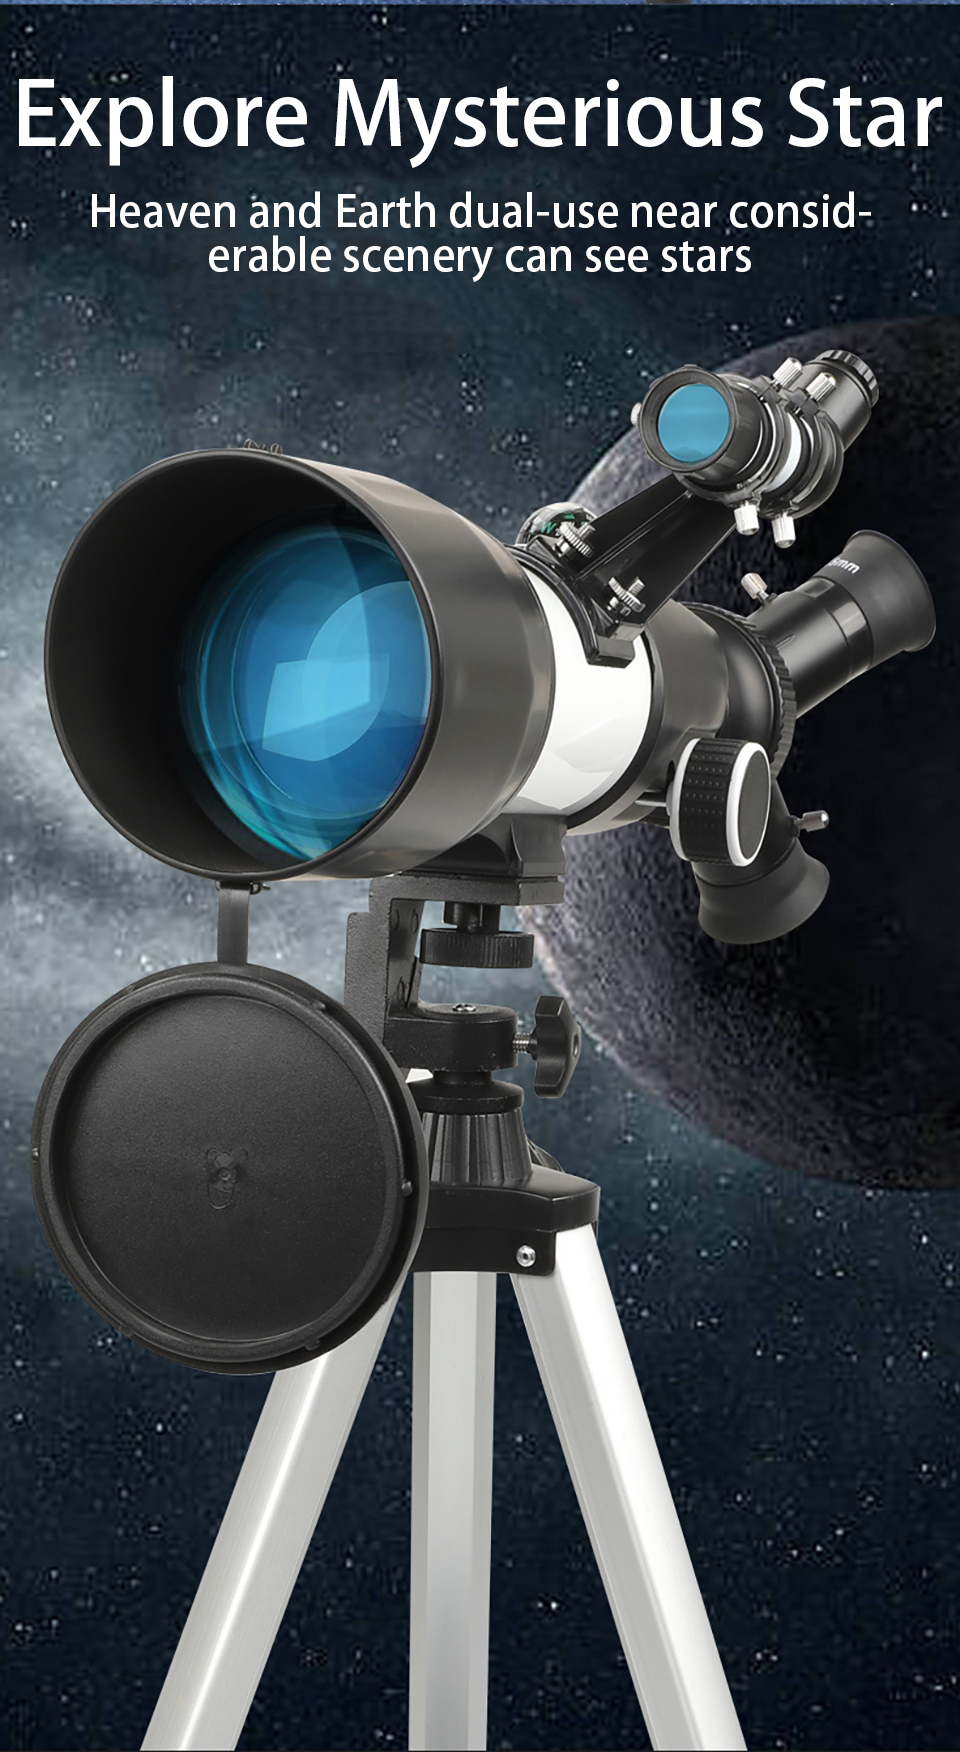 70MM Large Caliber Powerful Astronomical Telescope HD Professional High Quality 20X-166X Zoom Astronomical Telescope Deep Space, (Telescope For Sale, Telescope For Adults, Telescope For Kids, Telescope For Beginners, Best Outdoor Telescope).